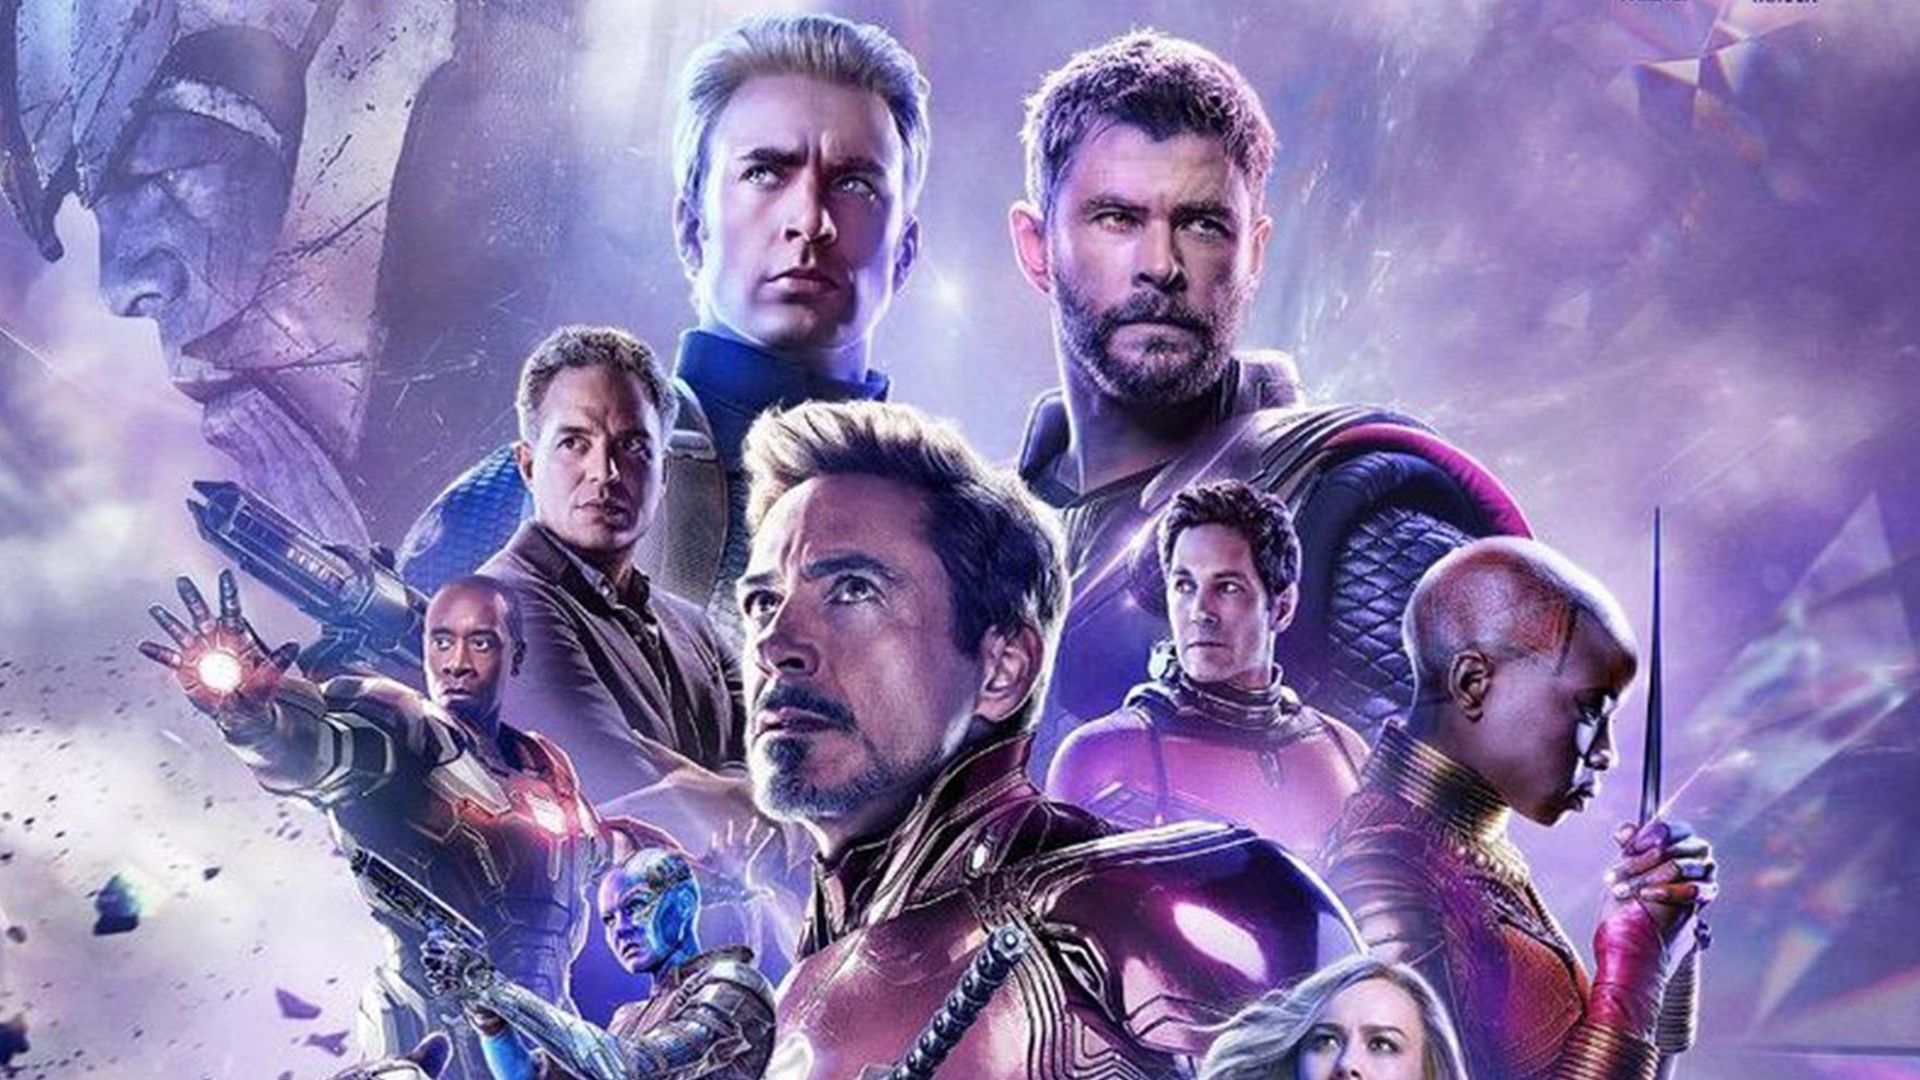 New avengers endgame footage was screened at cinemacon and the heroes are racing to thanos